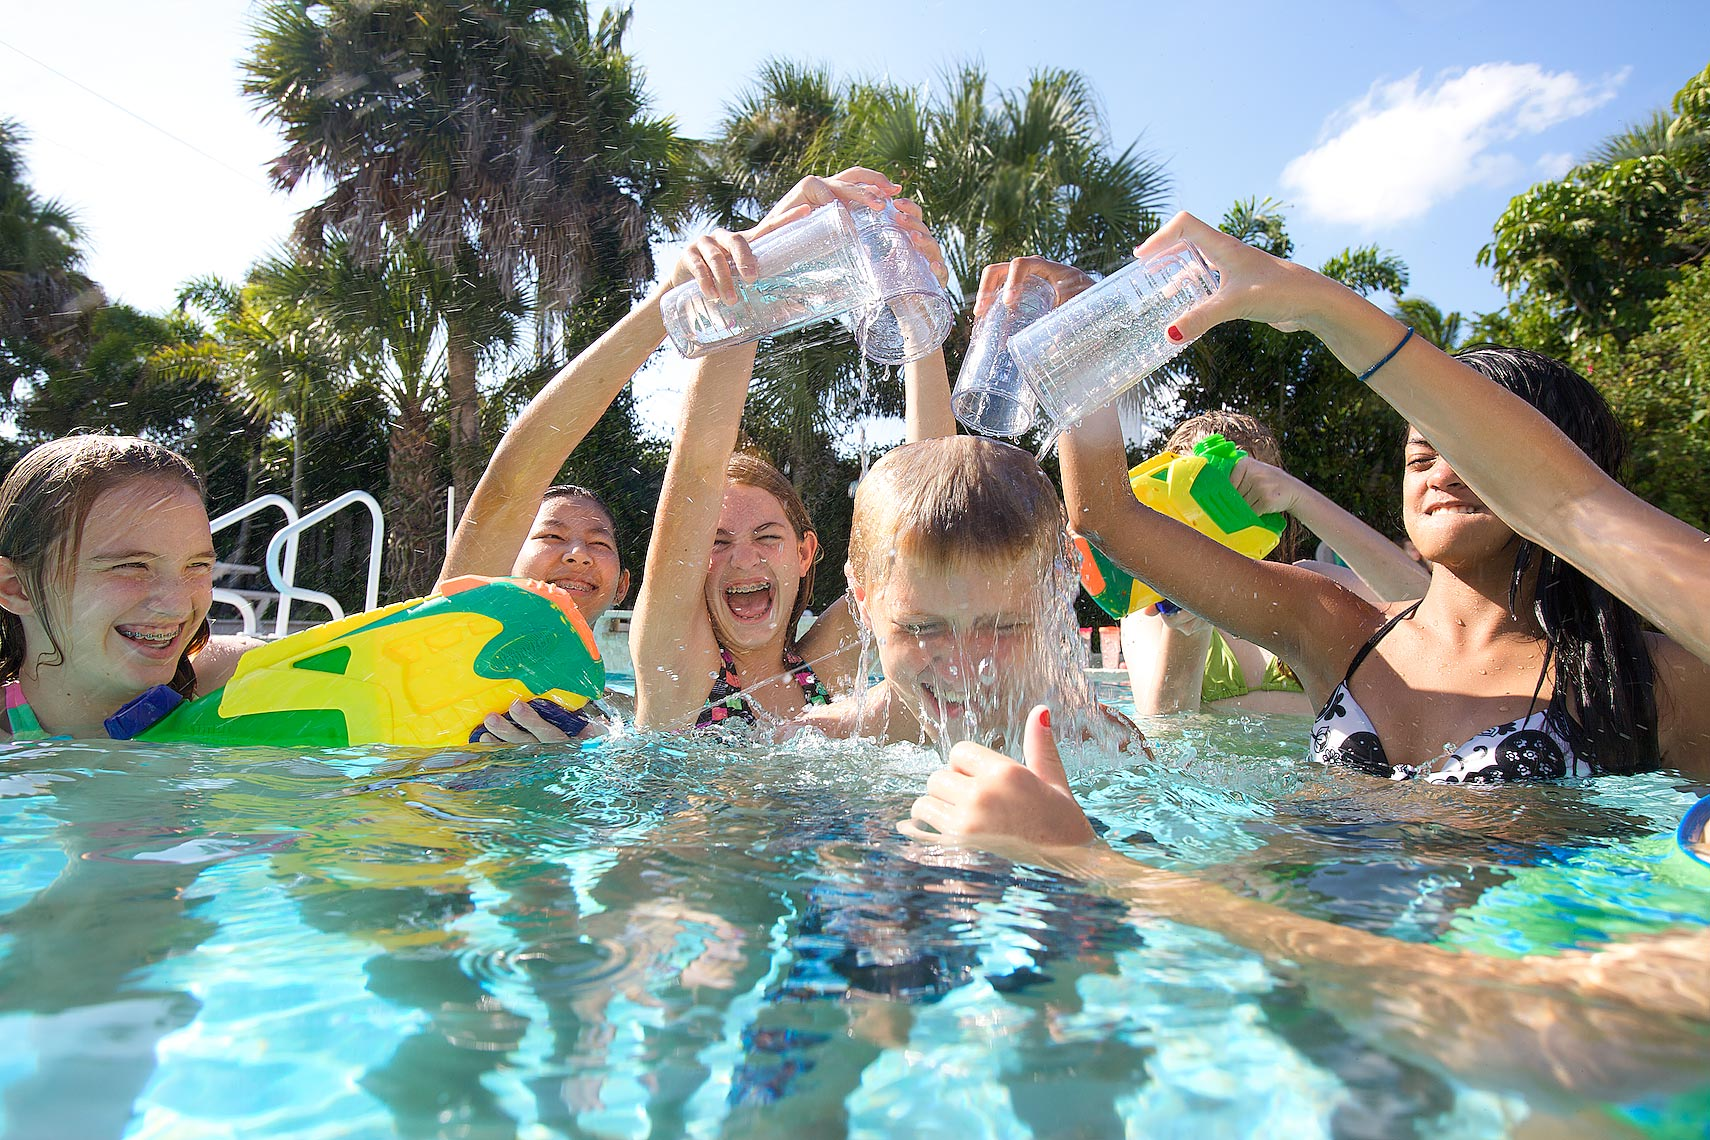 several kids in pool pour water on a boy_MG_3669_Robert-Holland.jpg